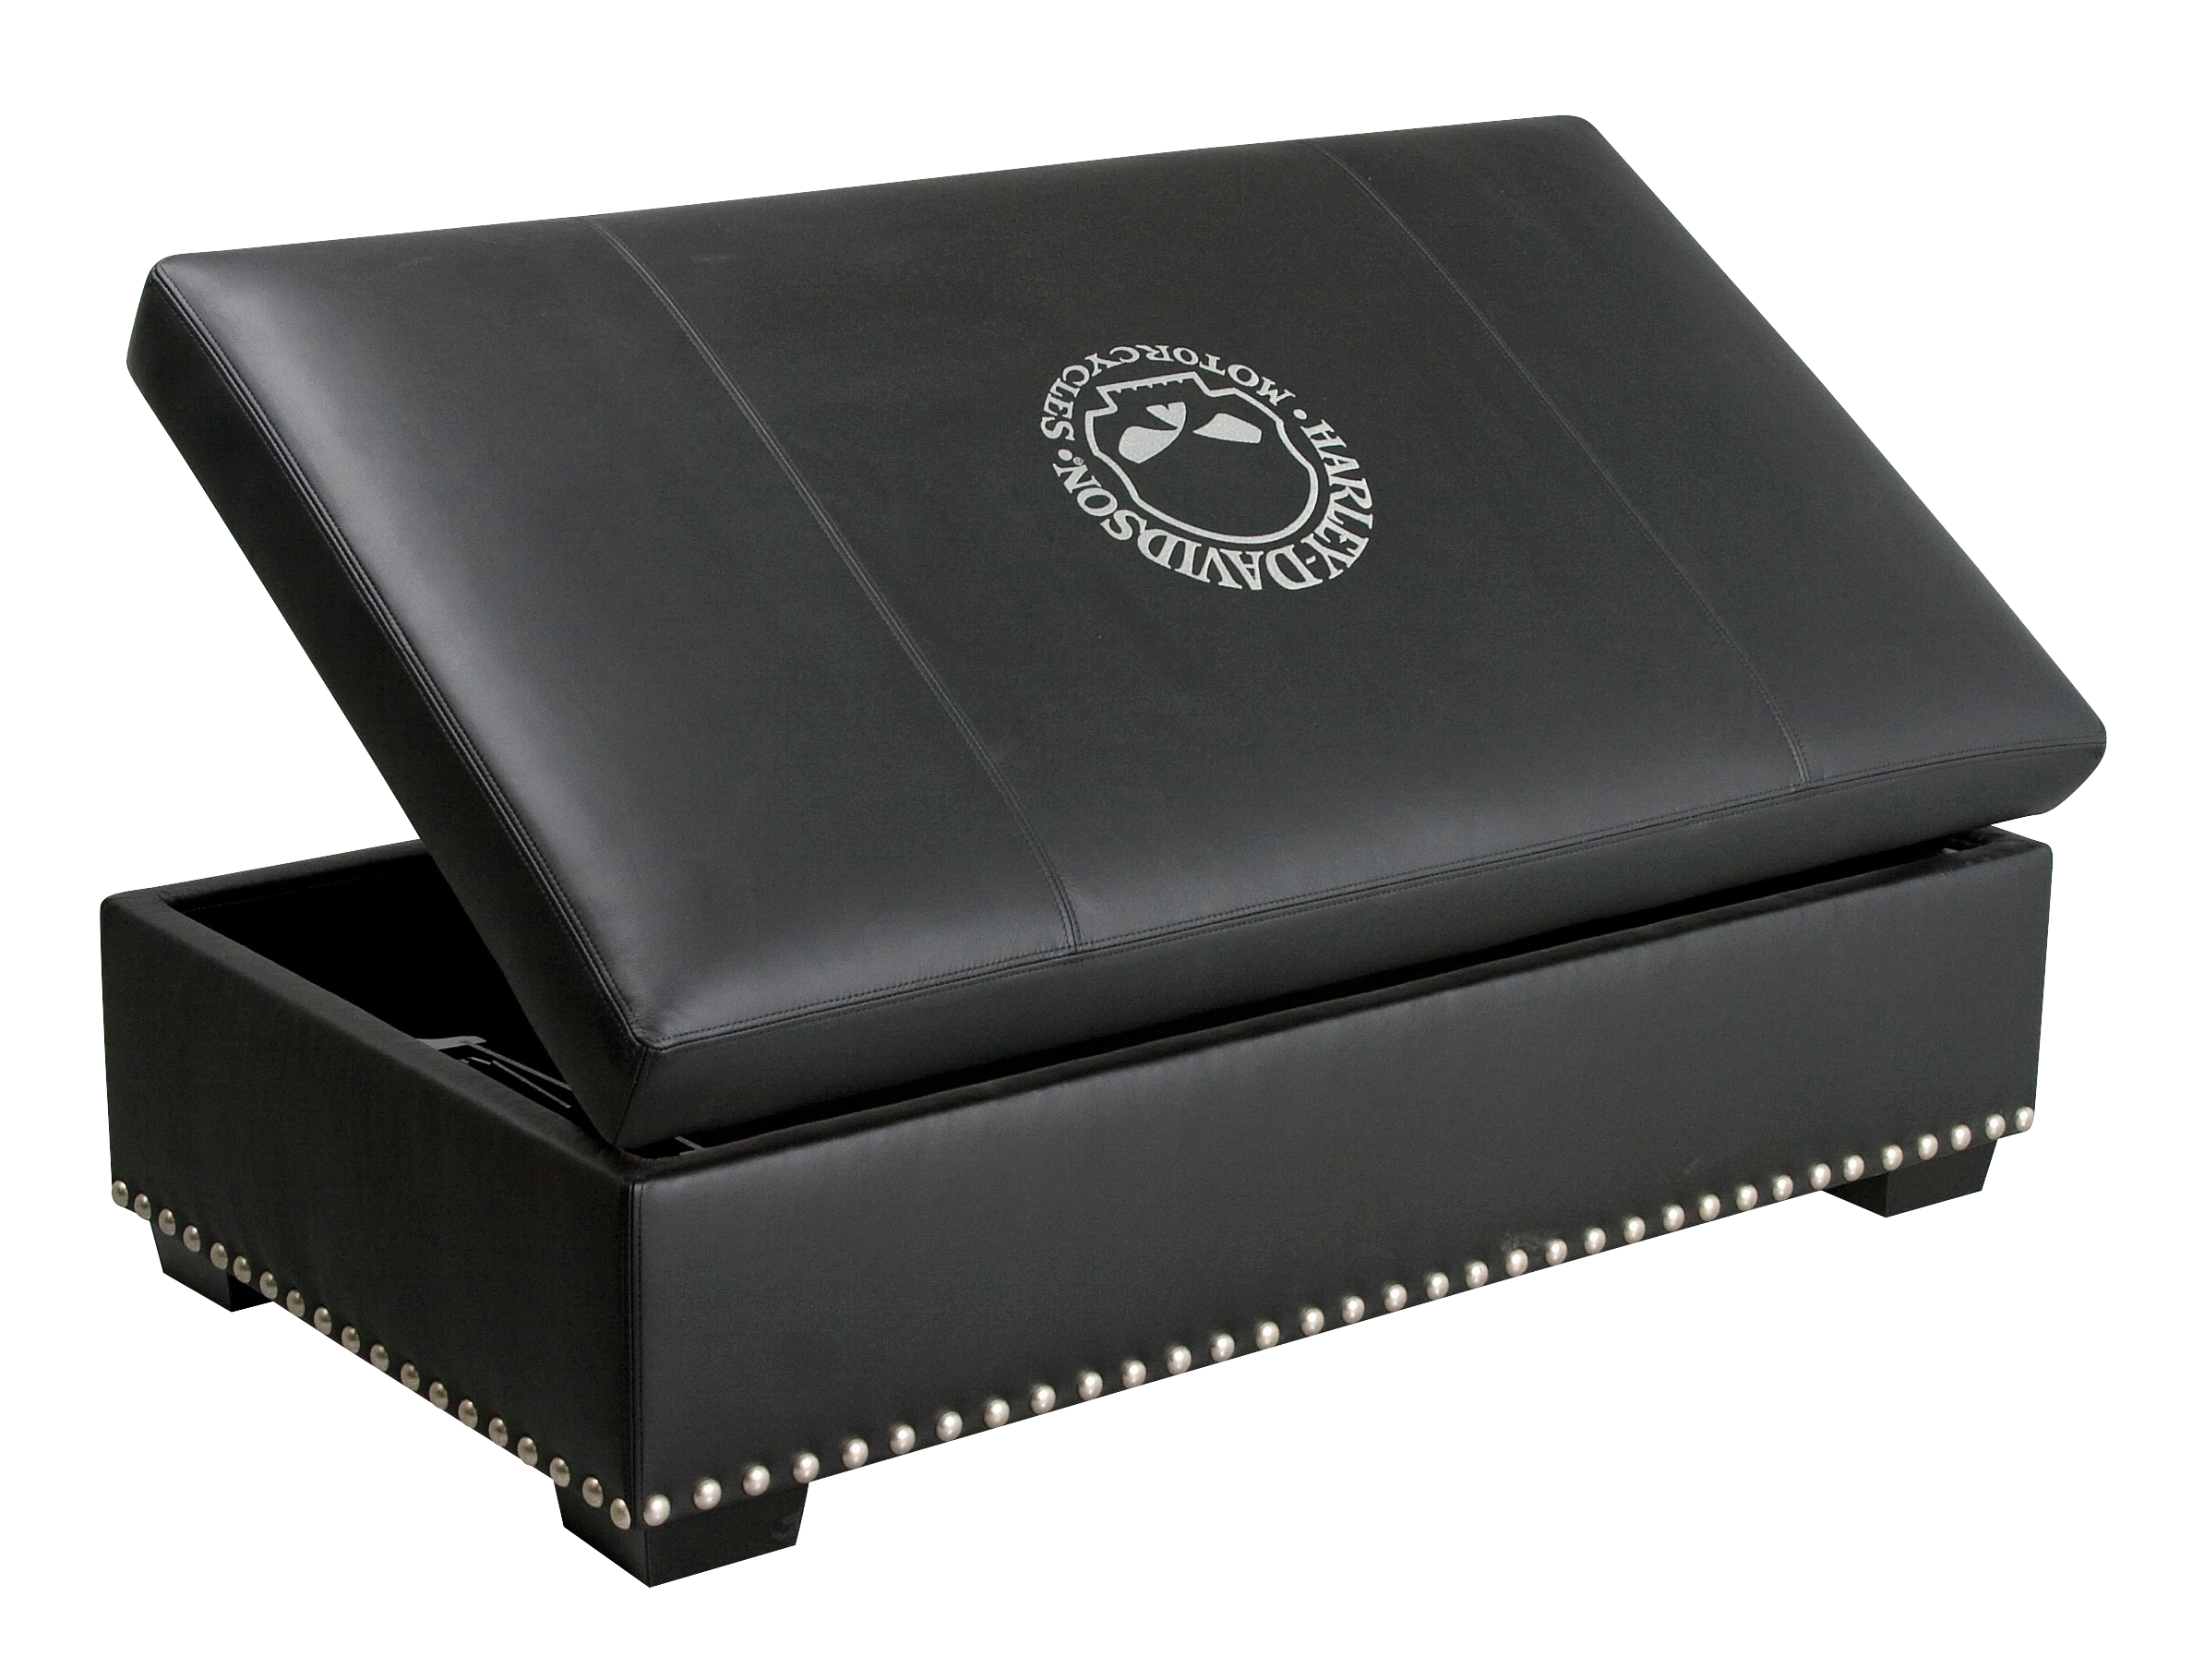 Hd 11610 So Harley Davidson Enthusiast Furniture By Classic Leather Harley Davidson Decor Harley Davidson Accessories Harley Davidson [ 1820 x 2388 Pixel ]